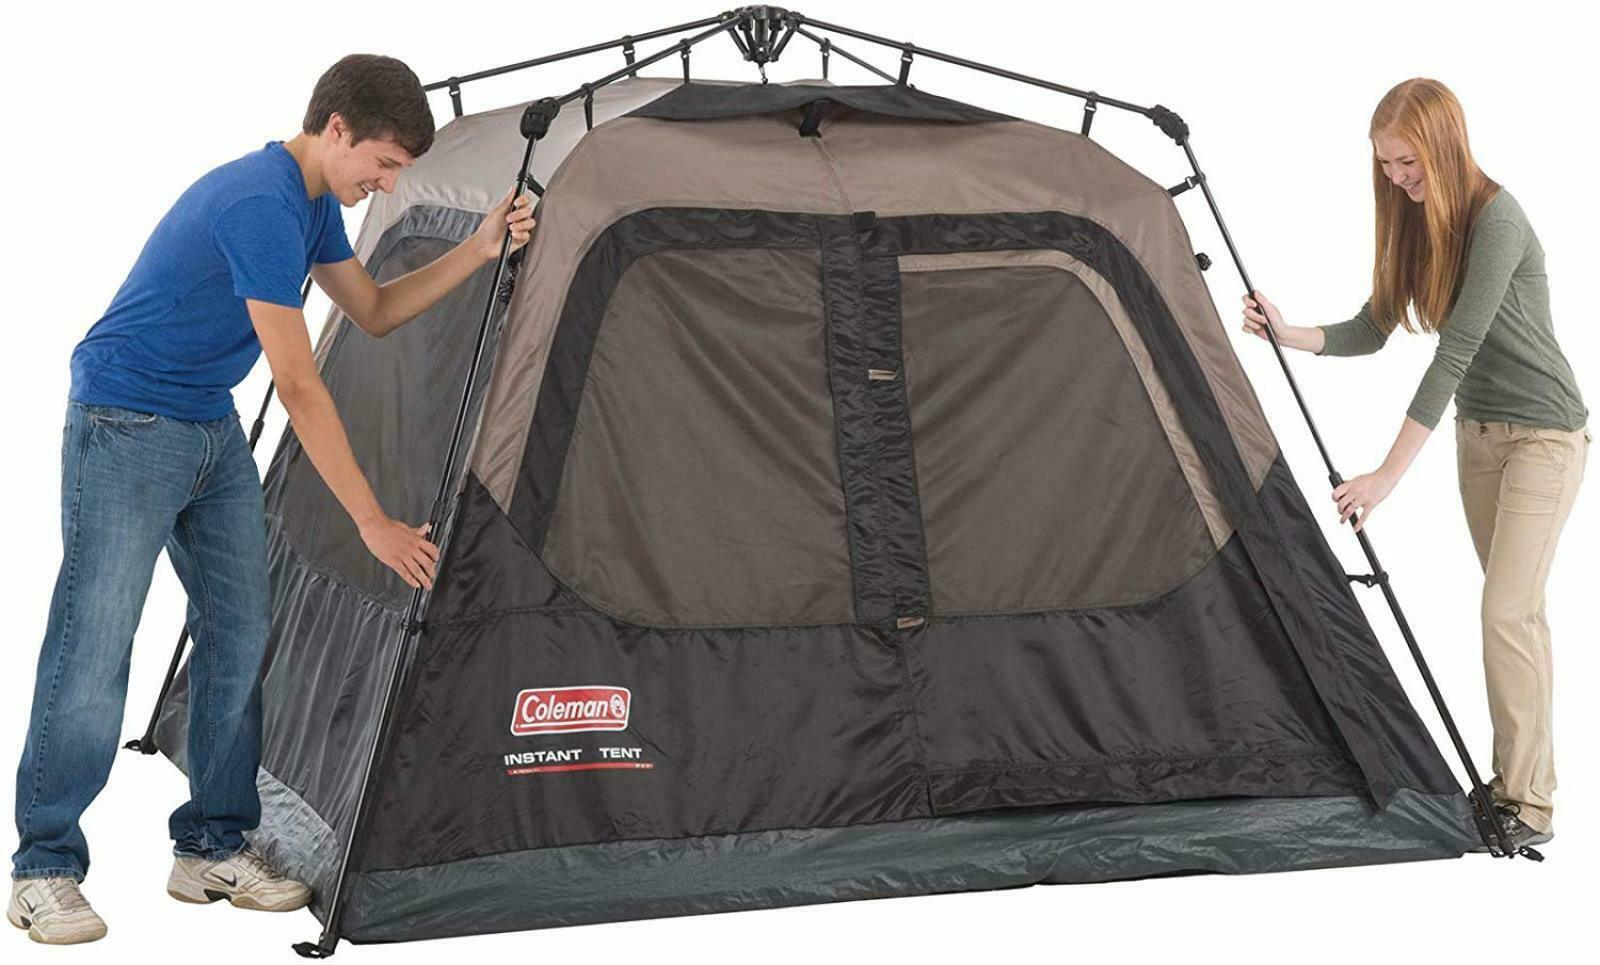 Camping Tent Cabin w   Instant Setup  Outdoor Shelter  Camping Easy Assembly